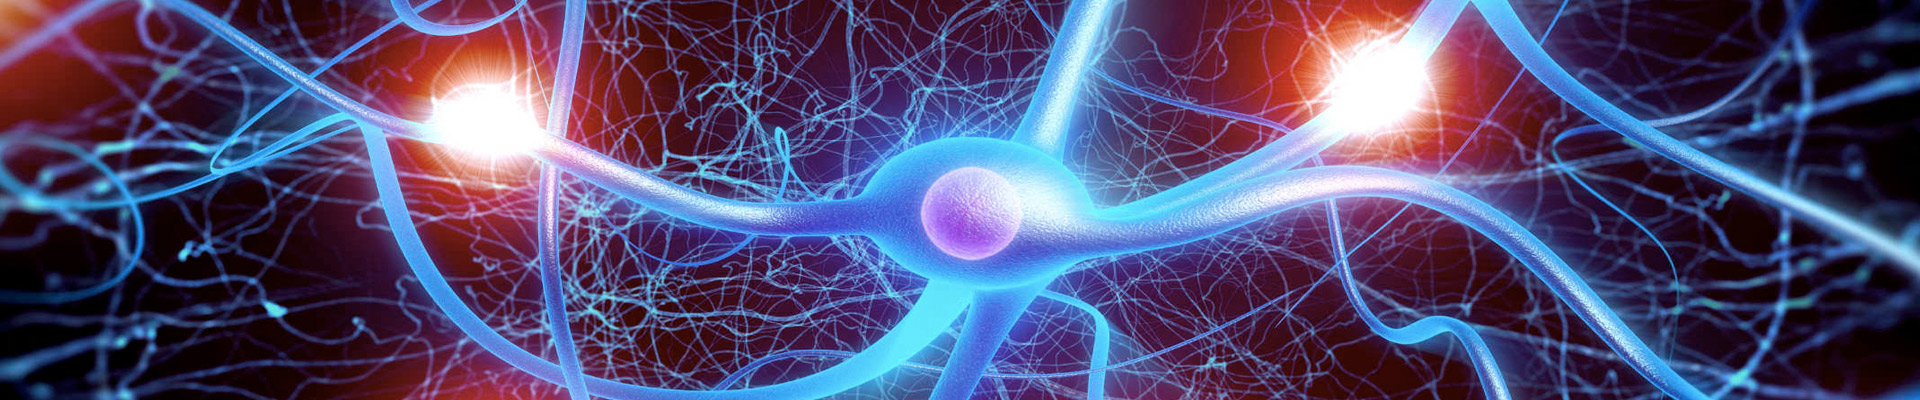 Nerves transmit life in the body